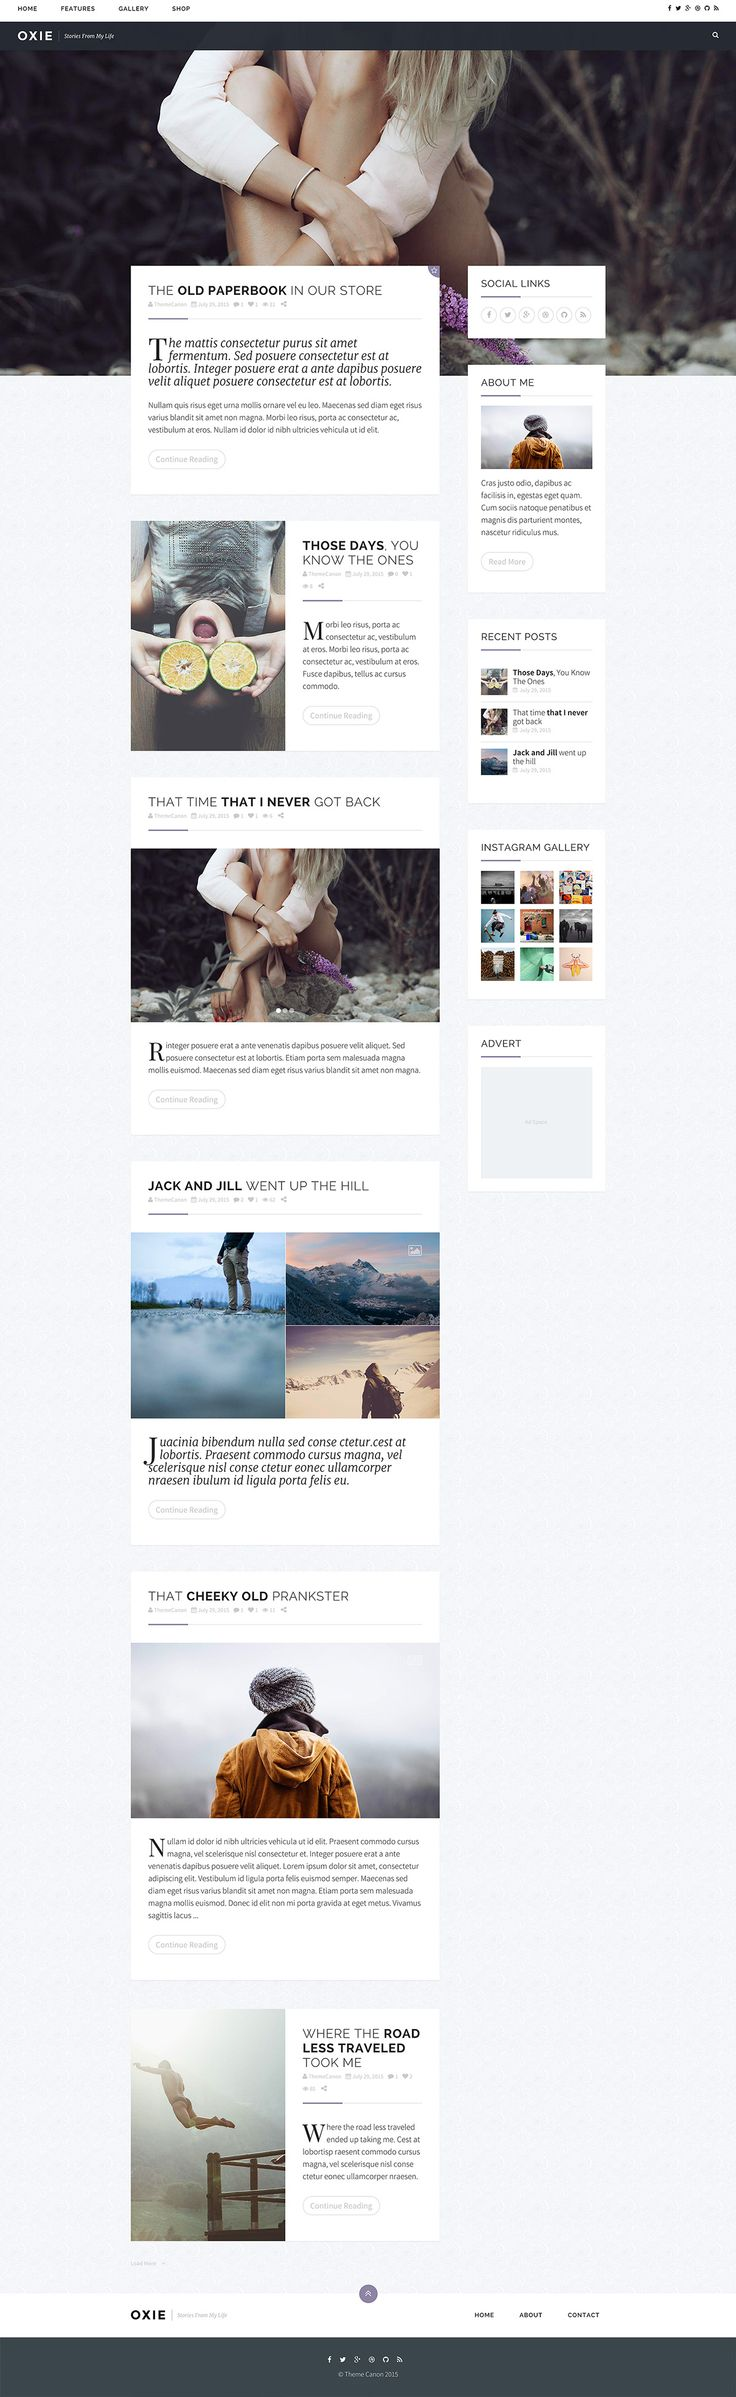 Oxie Personal Wordpress Blog on Behance